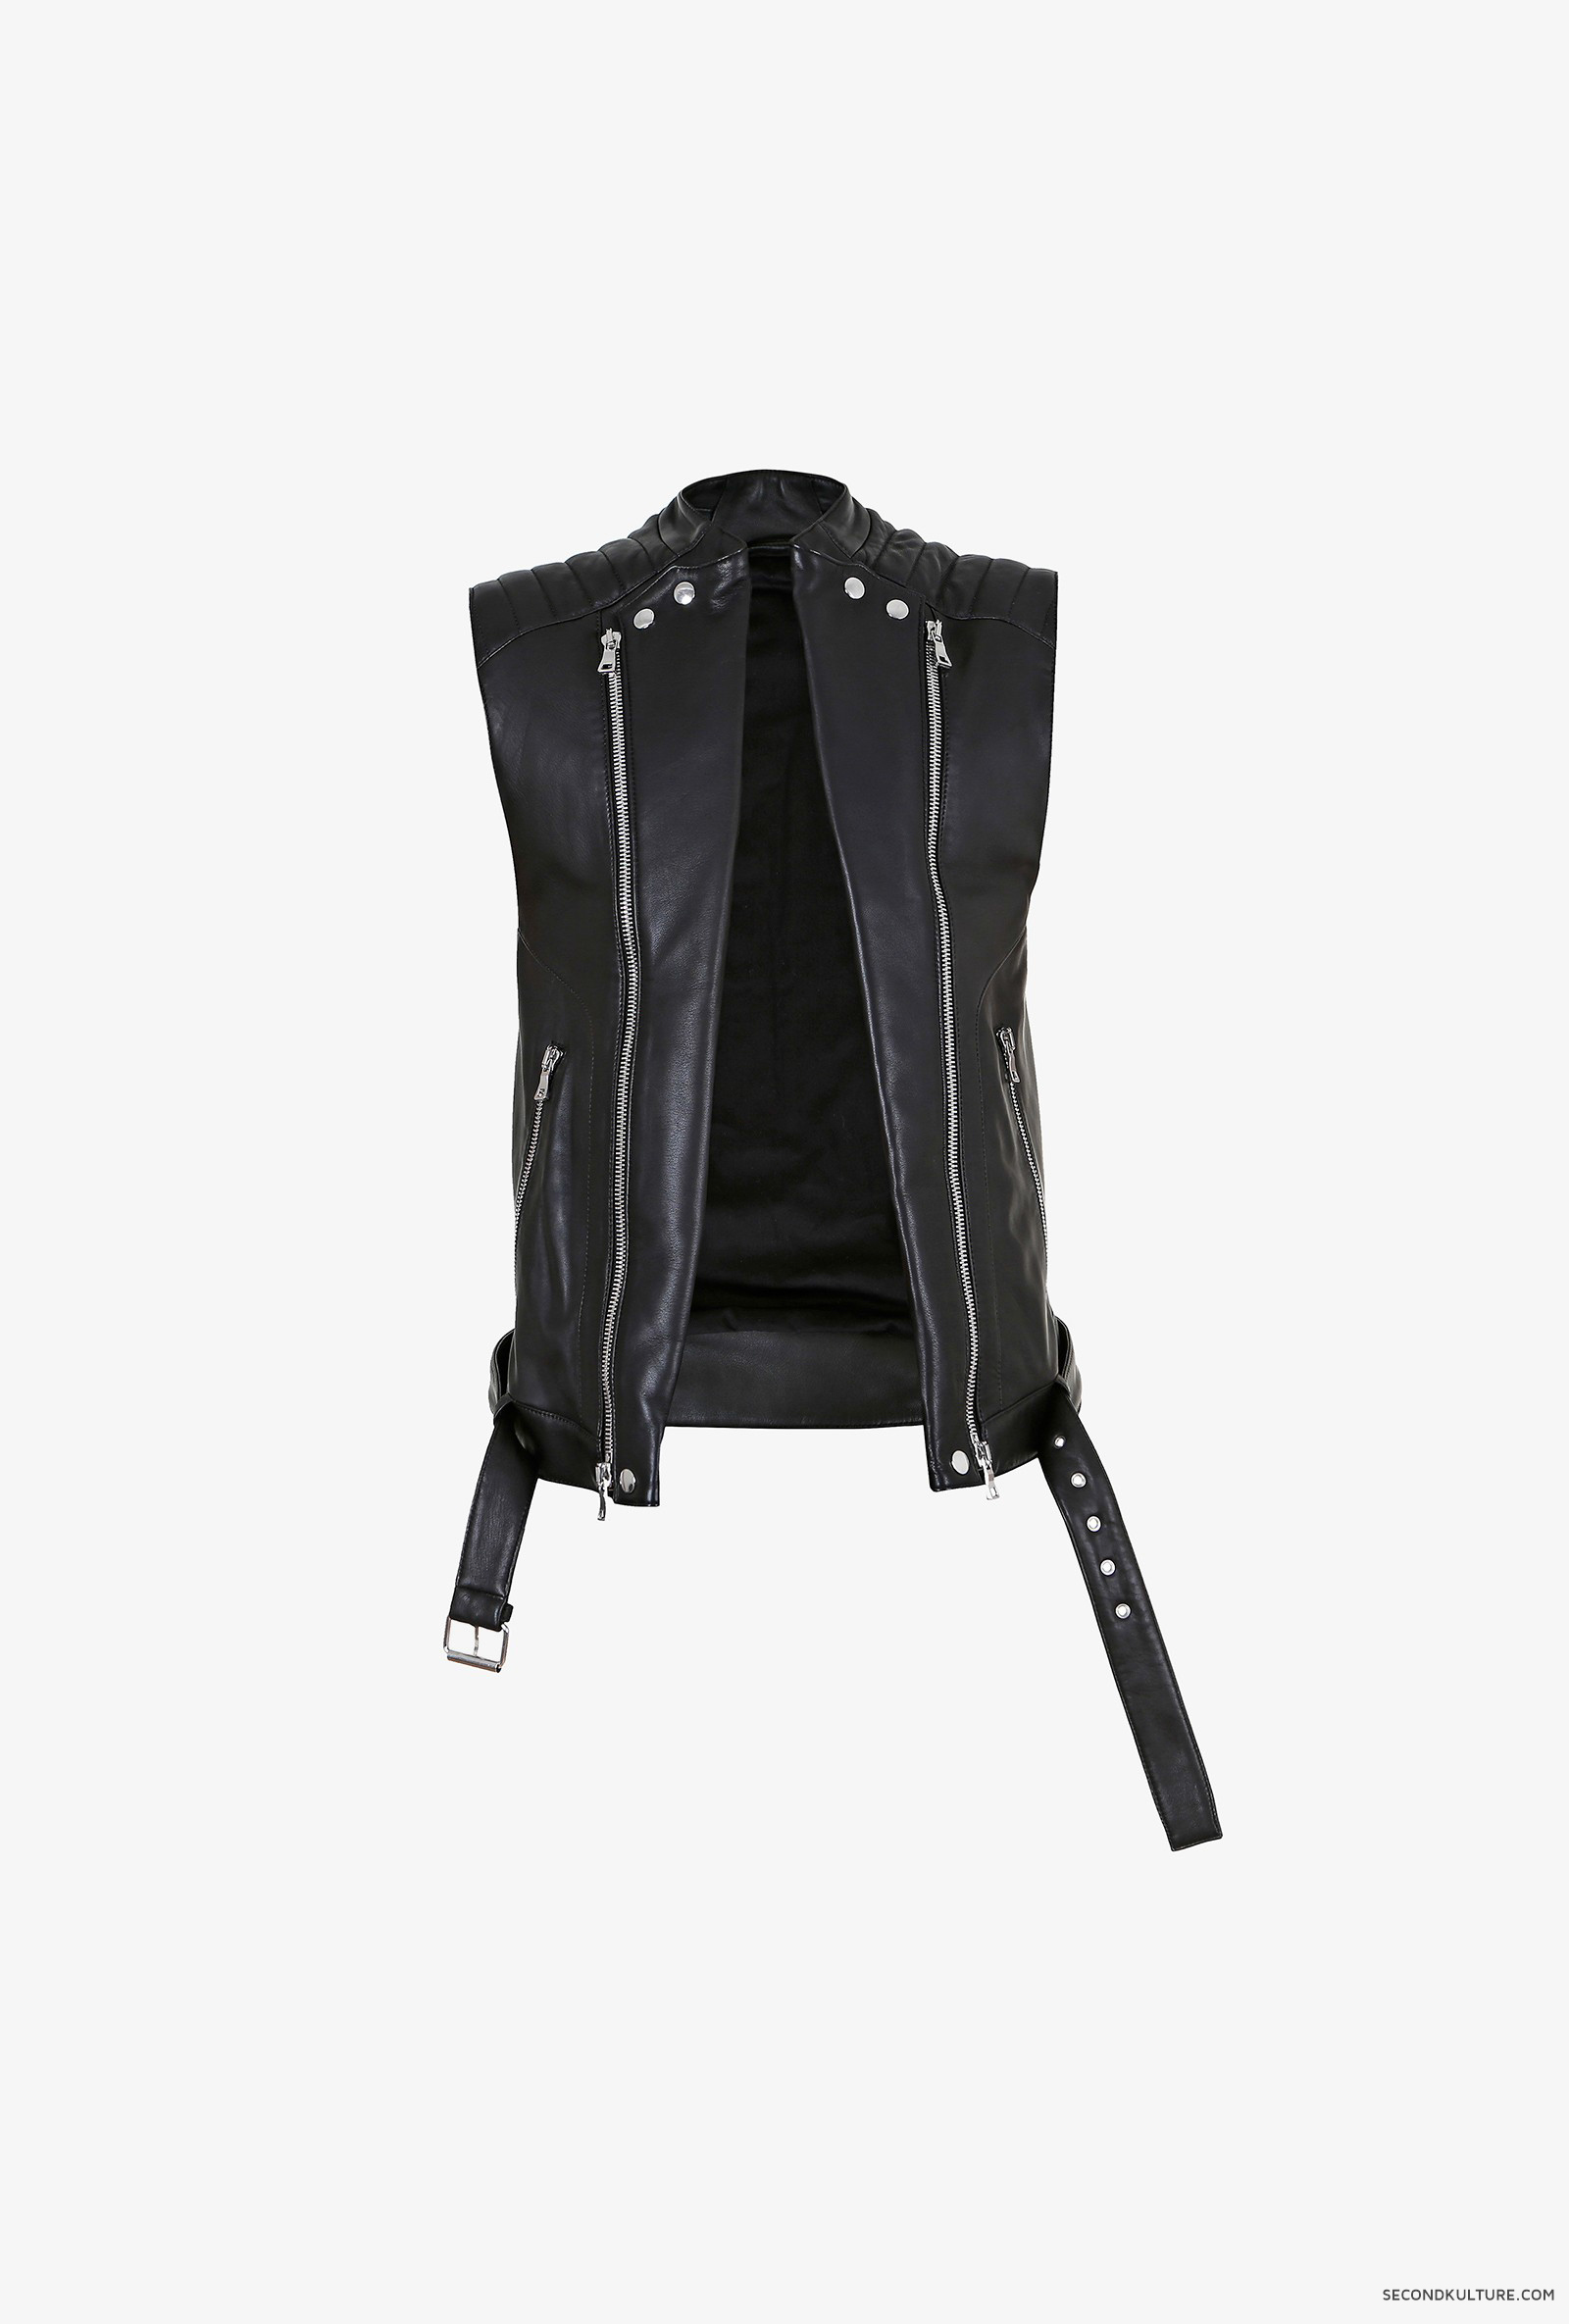 Balmain-Black-Biker-Leather-Zipped-Sleeveless-Jacket-S5HC851C601-176-5